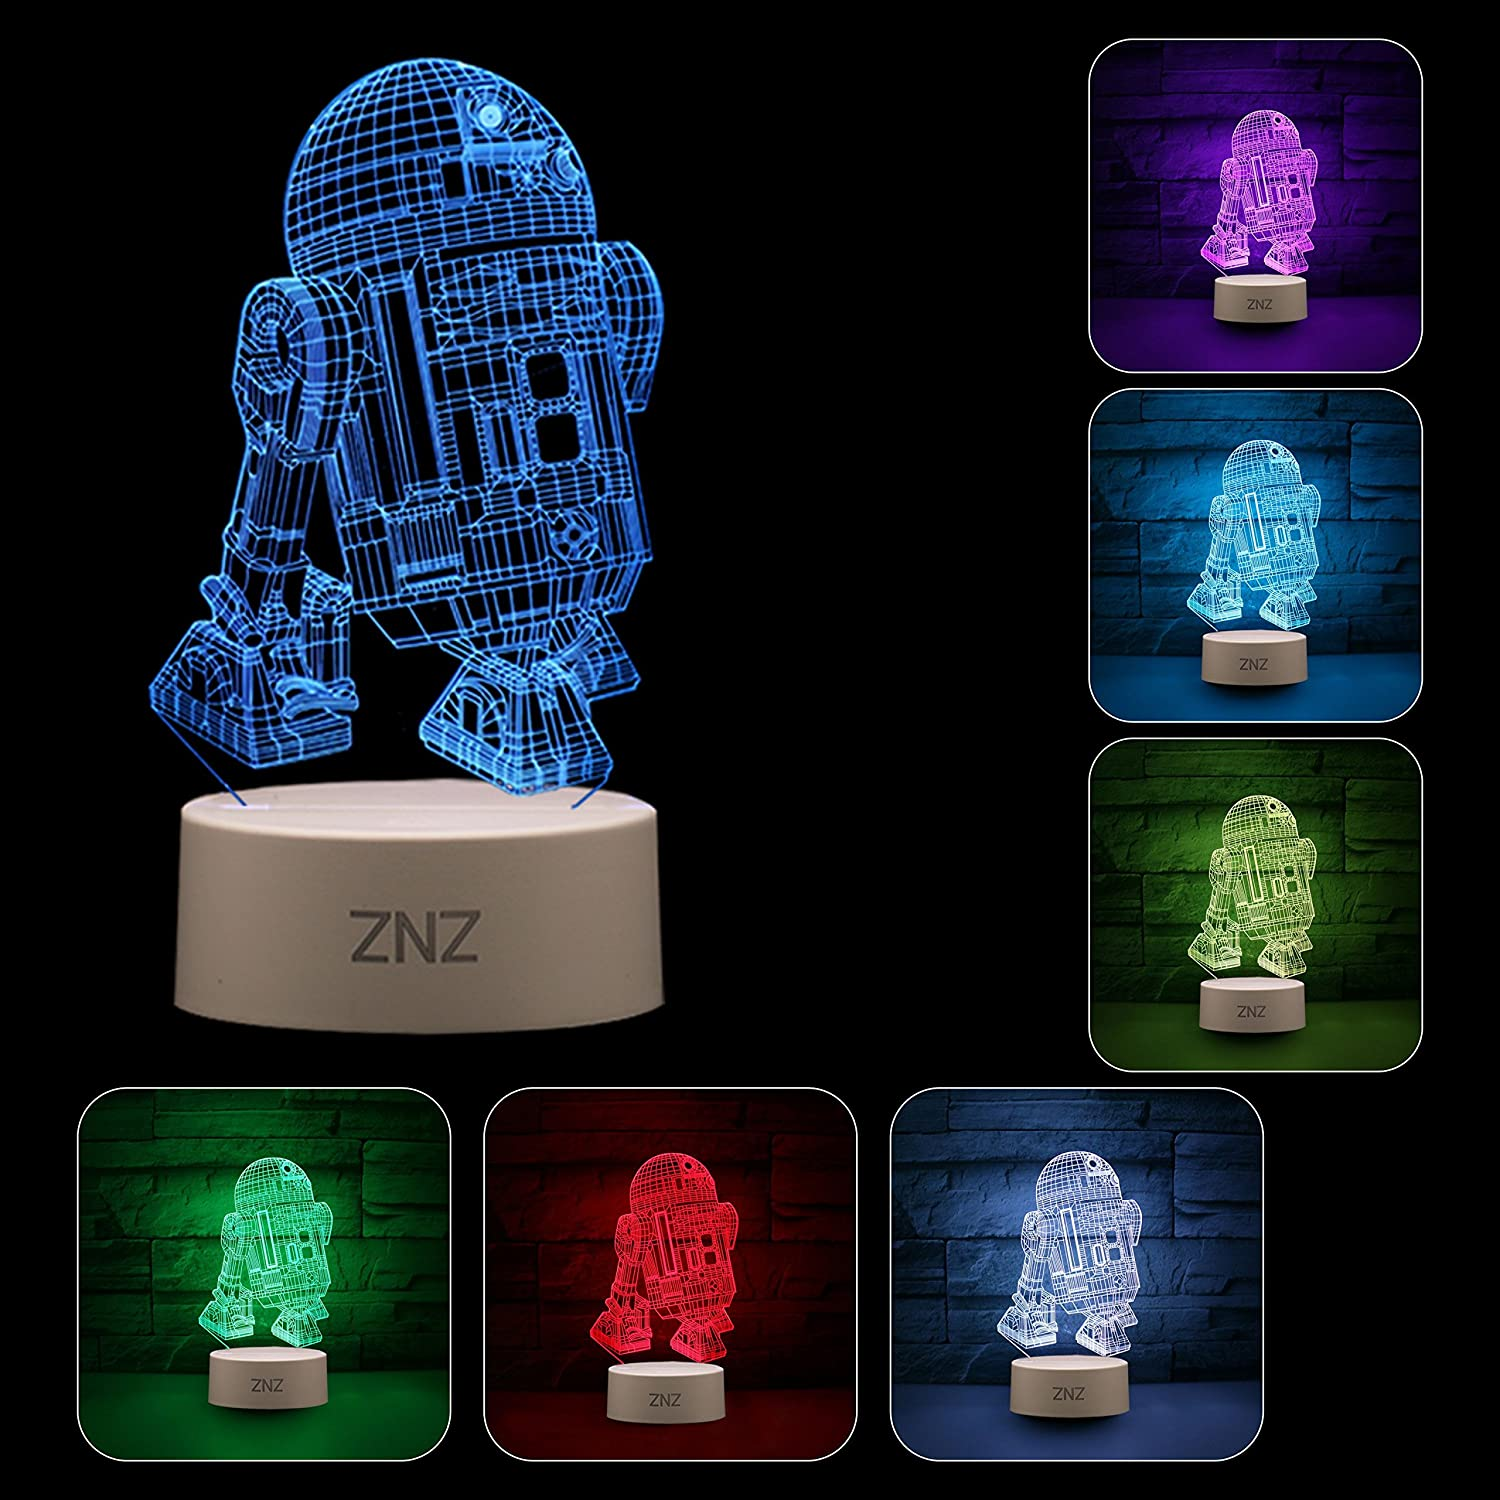 Cat 3D LED Star Wars Night Light Perfect Gifts for Kids and Room Room Decor ZNZ Illusion Lamp Three Pattern and 16 Color Change Decor Lamp